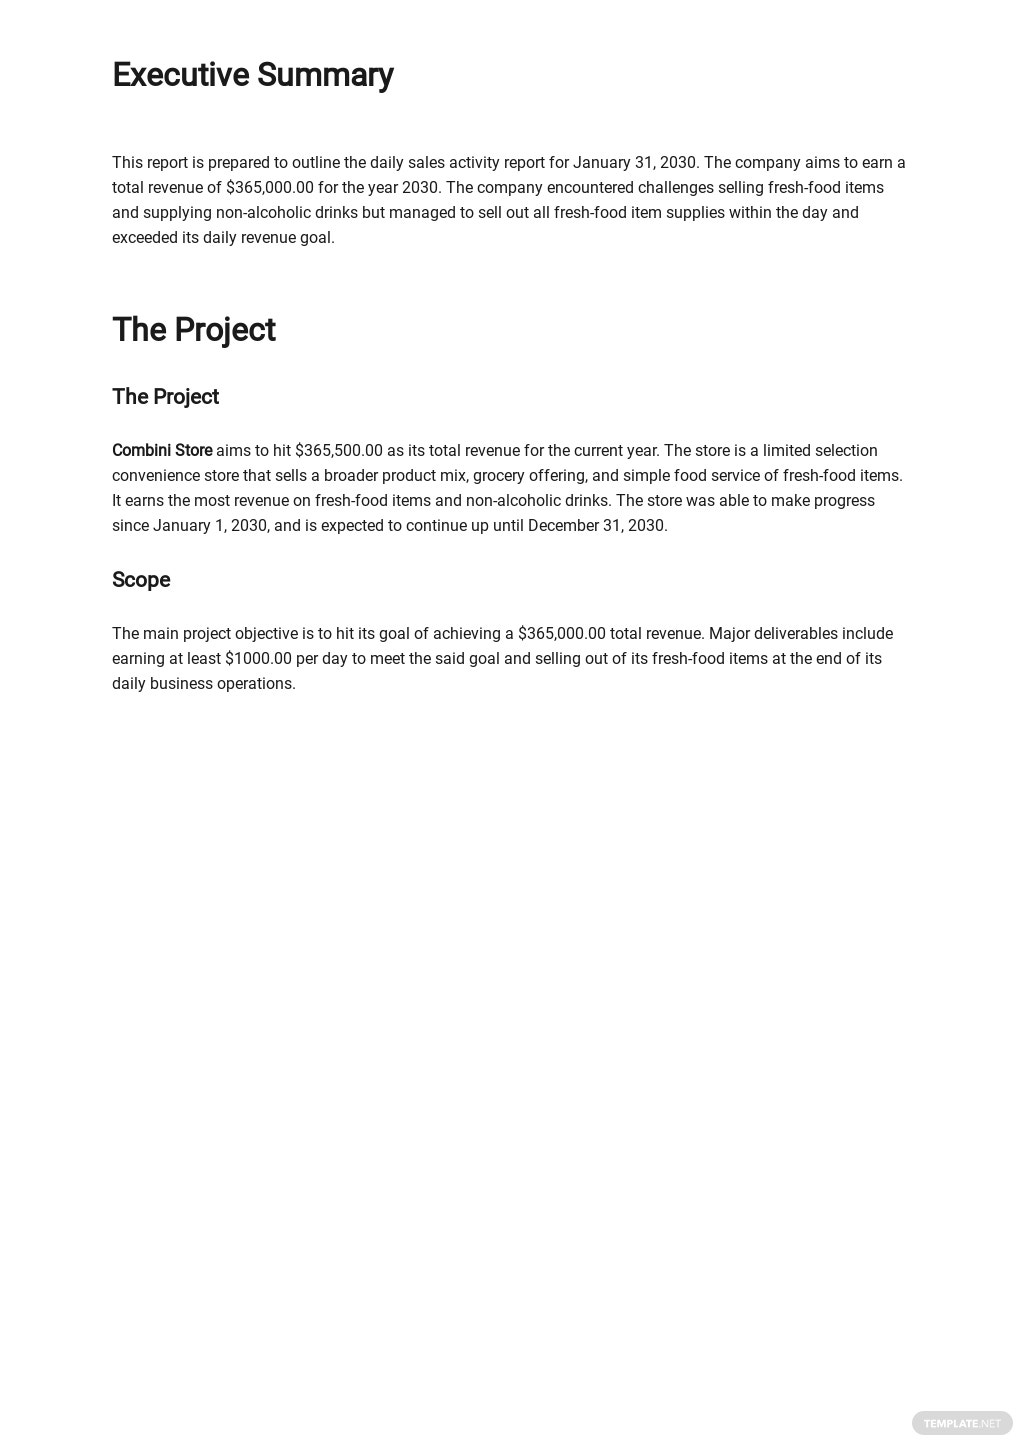 Free Daily Sales Activity Report Template 1.jpe